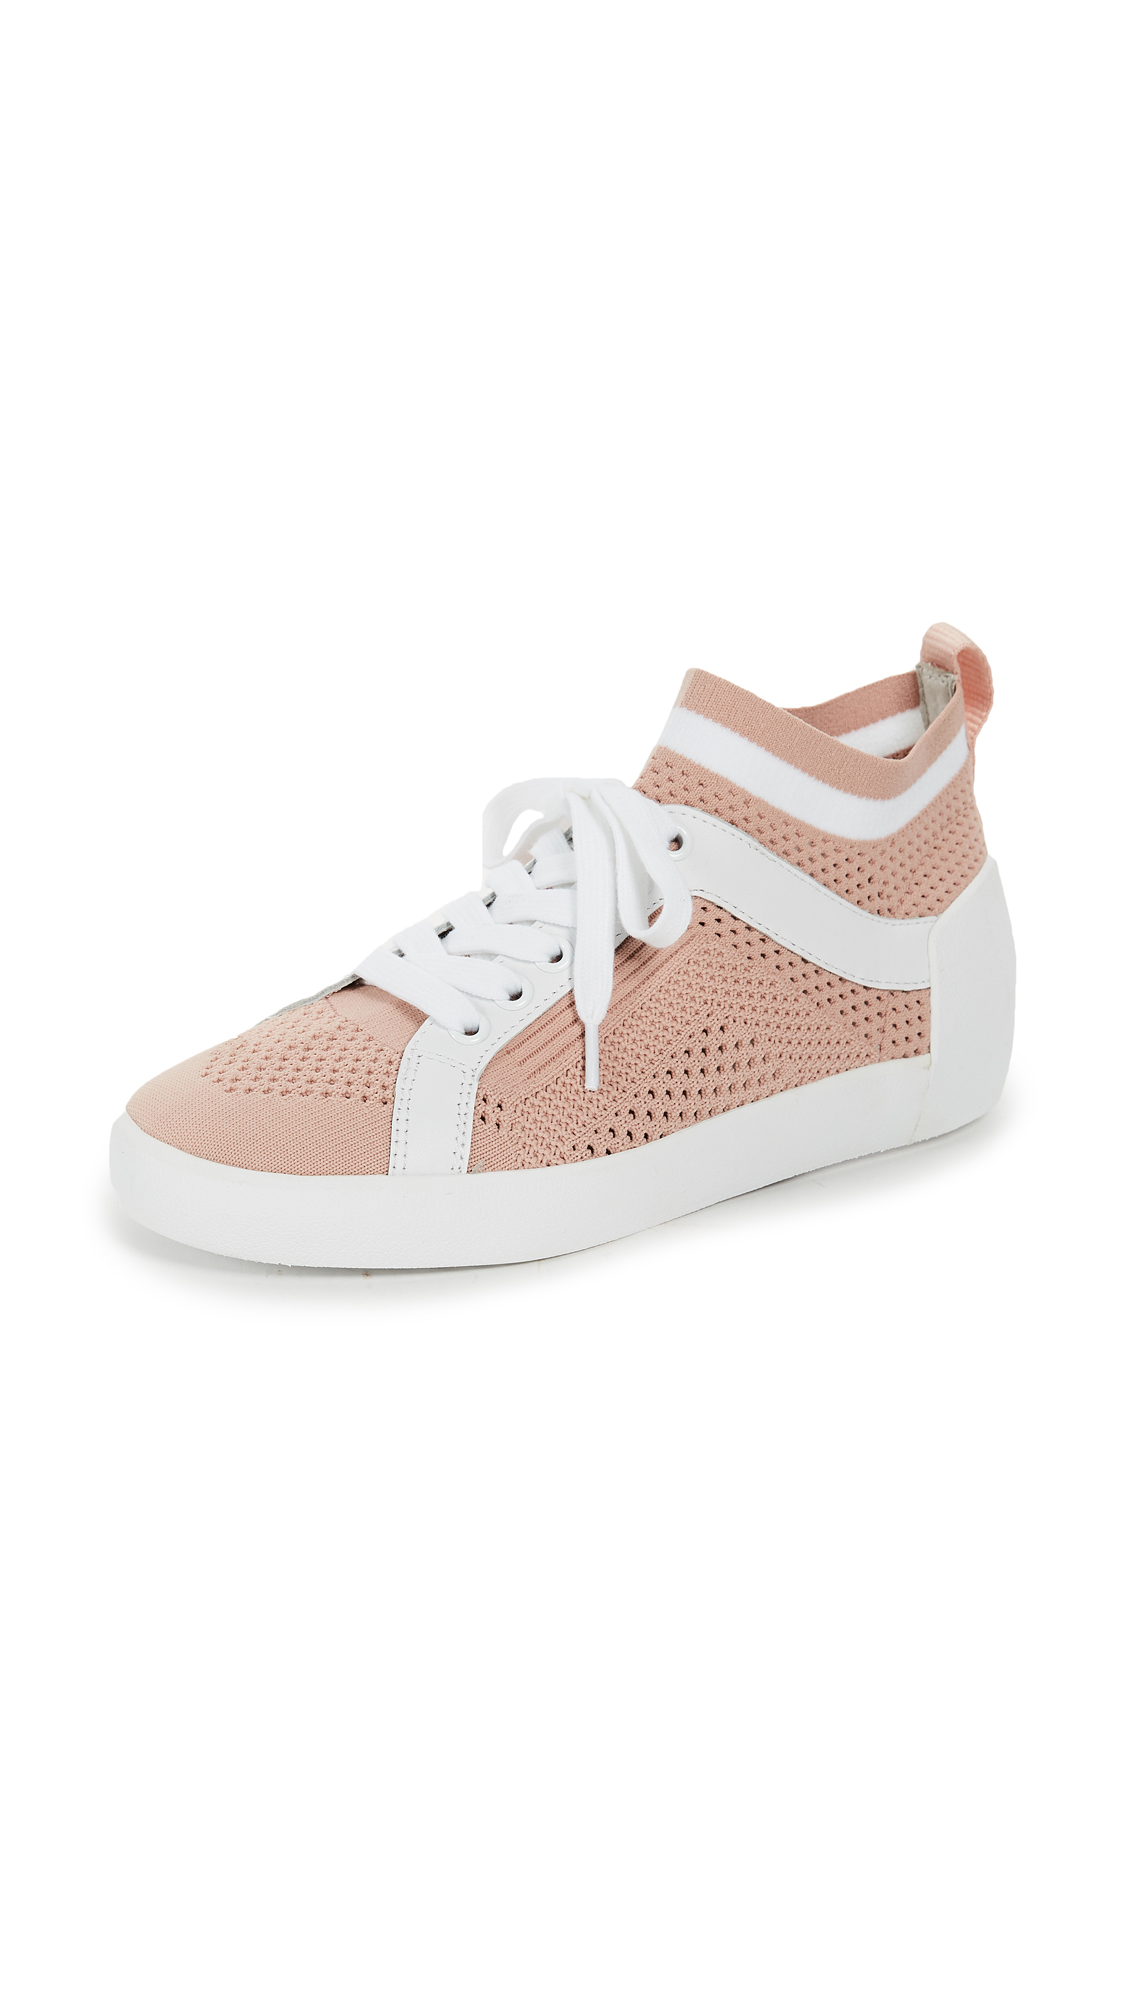 Ash Nolita Sneakers - Powder/White